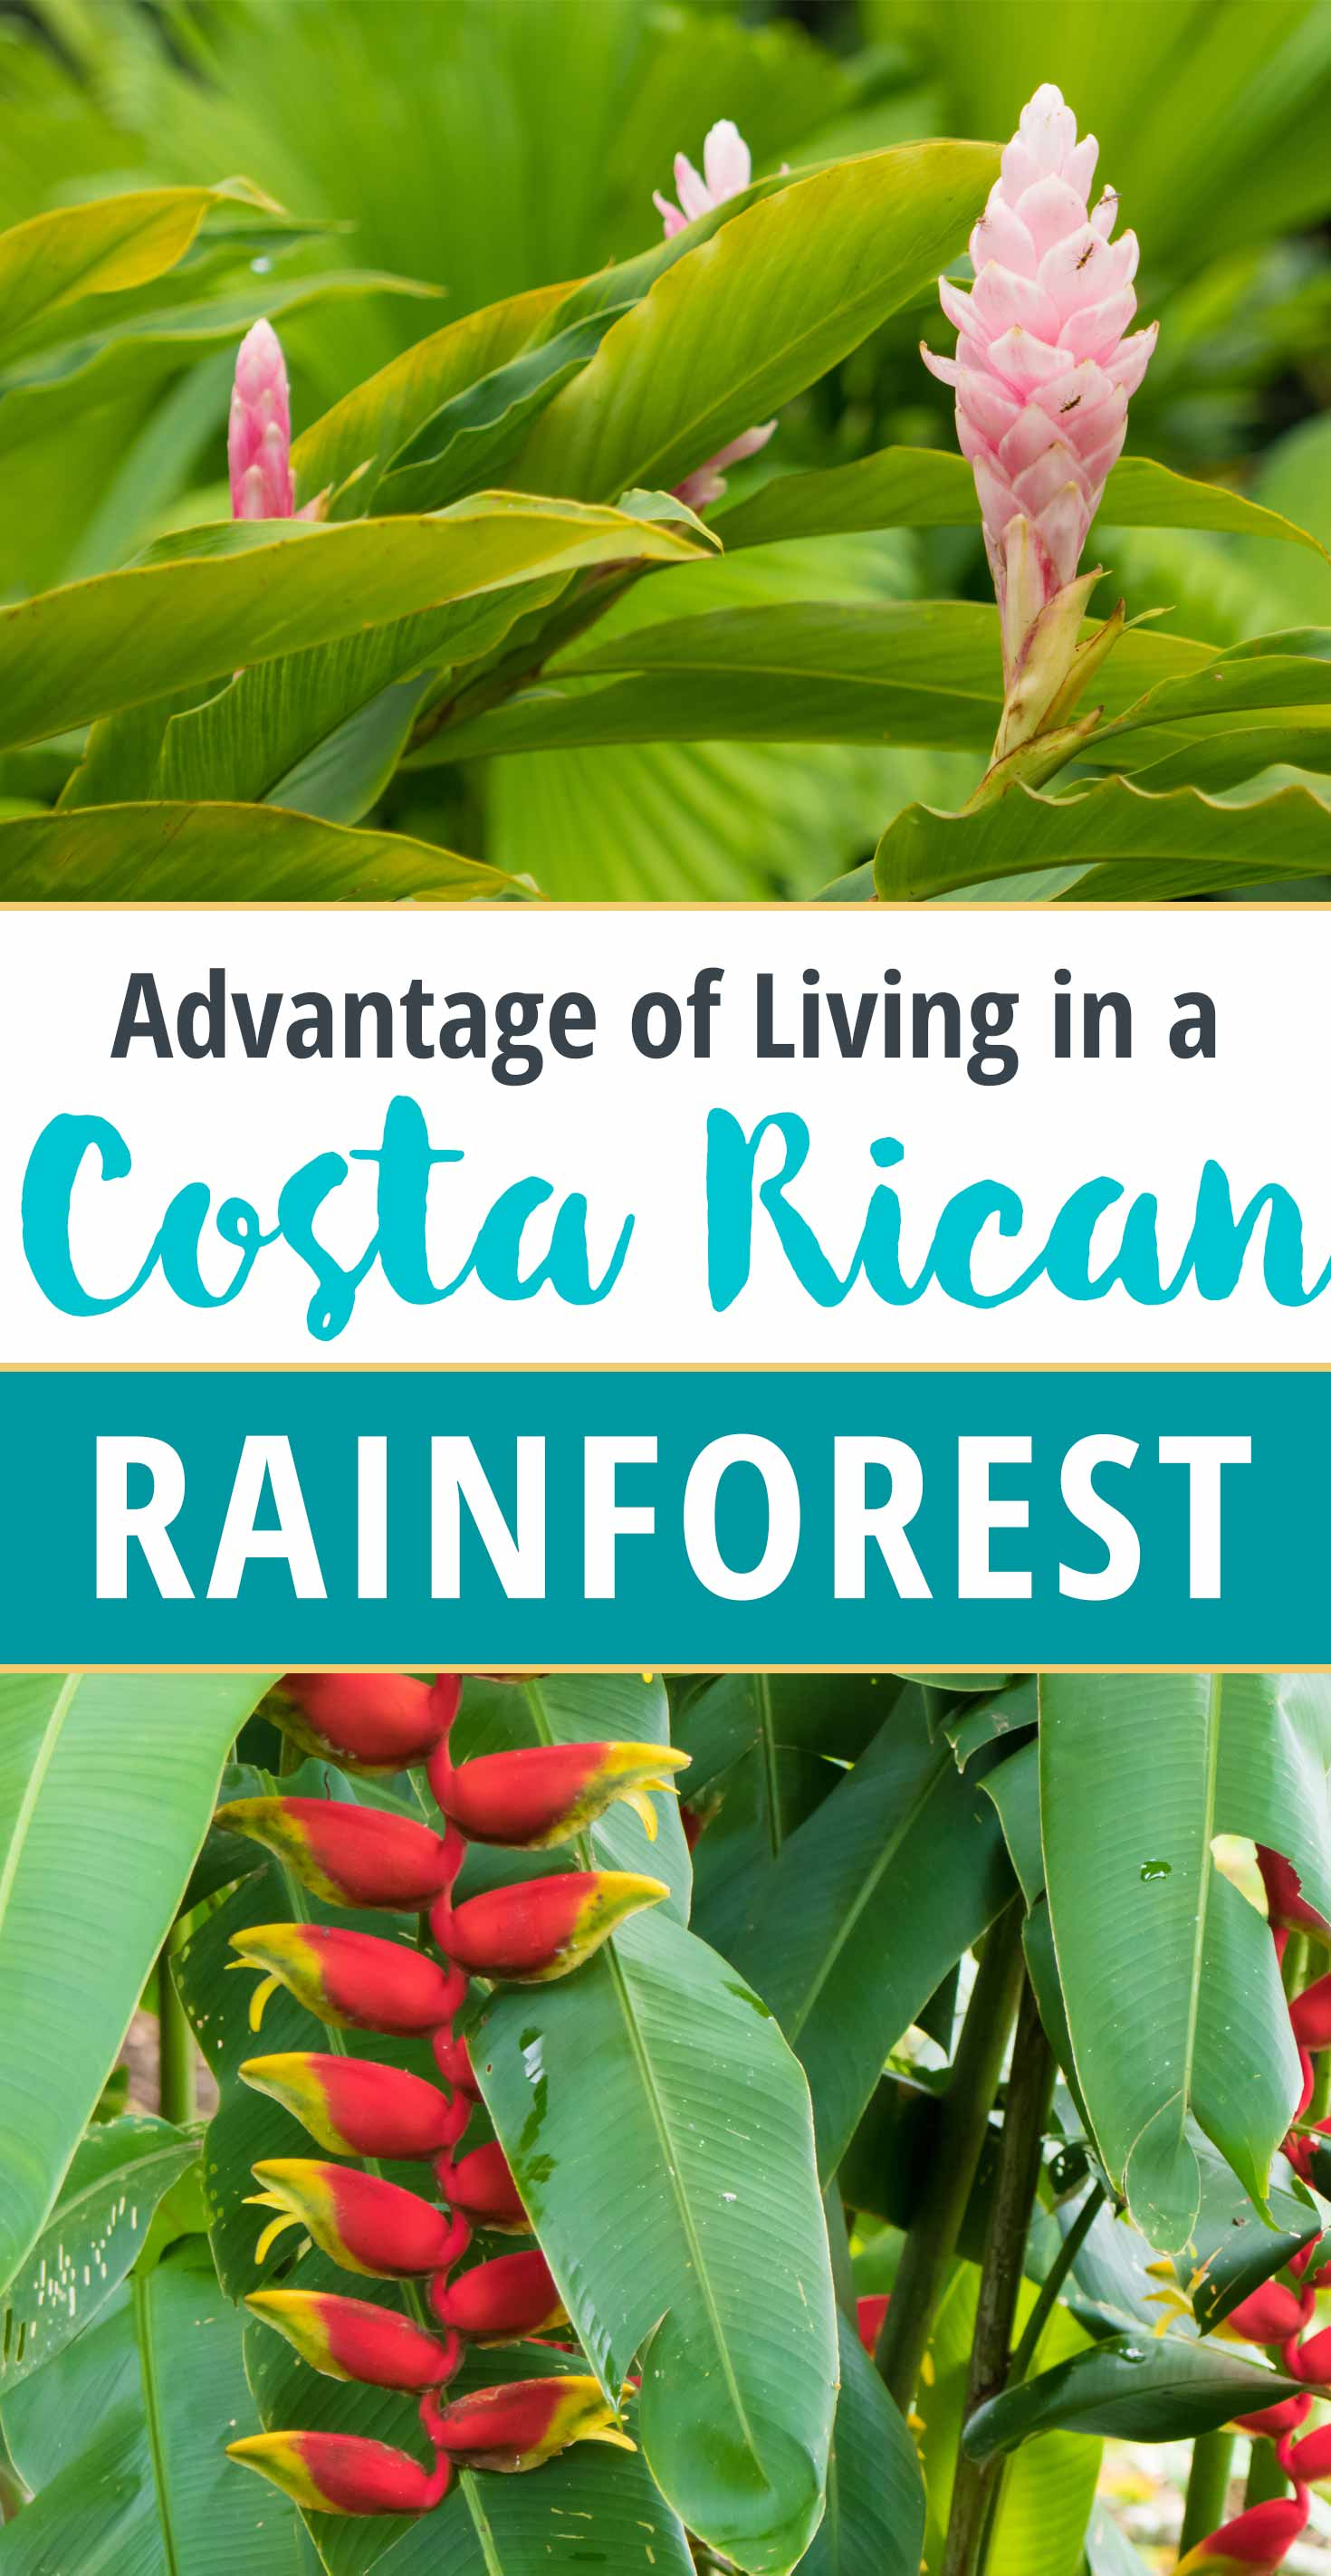 Advantage of Living in a Costa Rican Rainforest: Effortless Gardens!